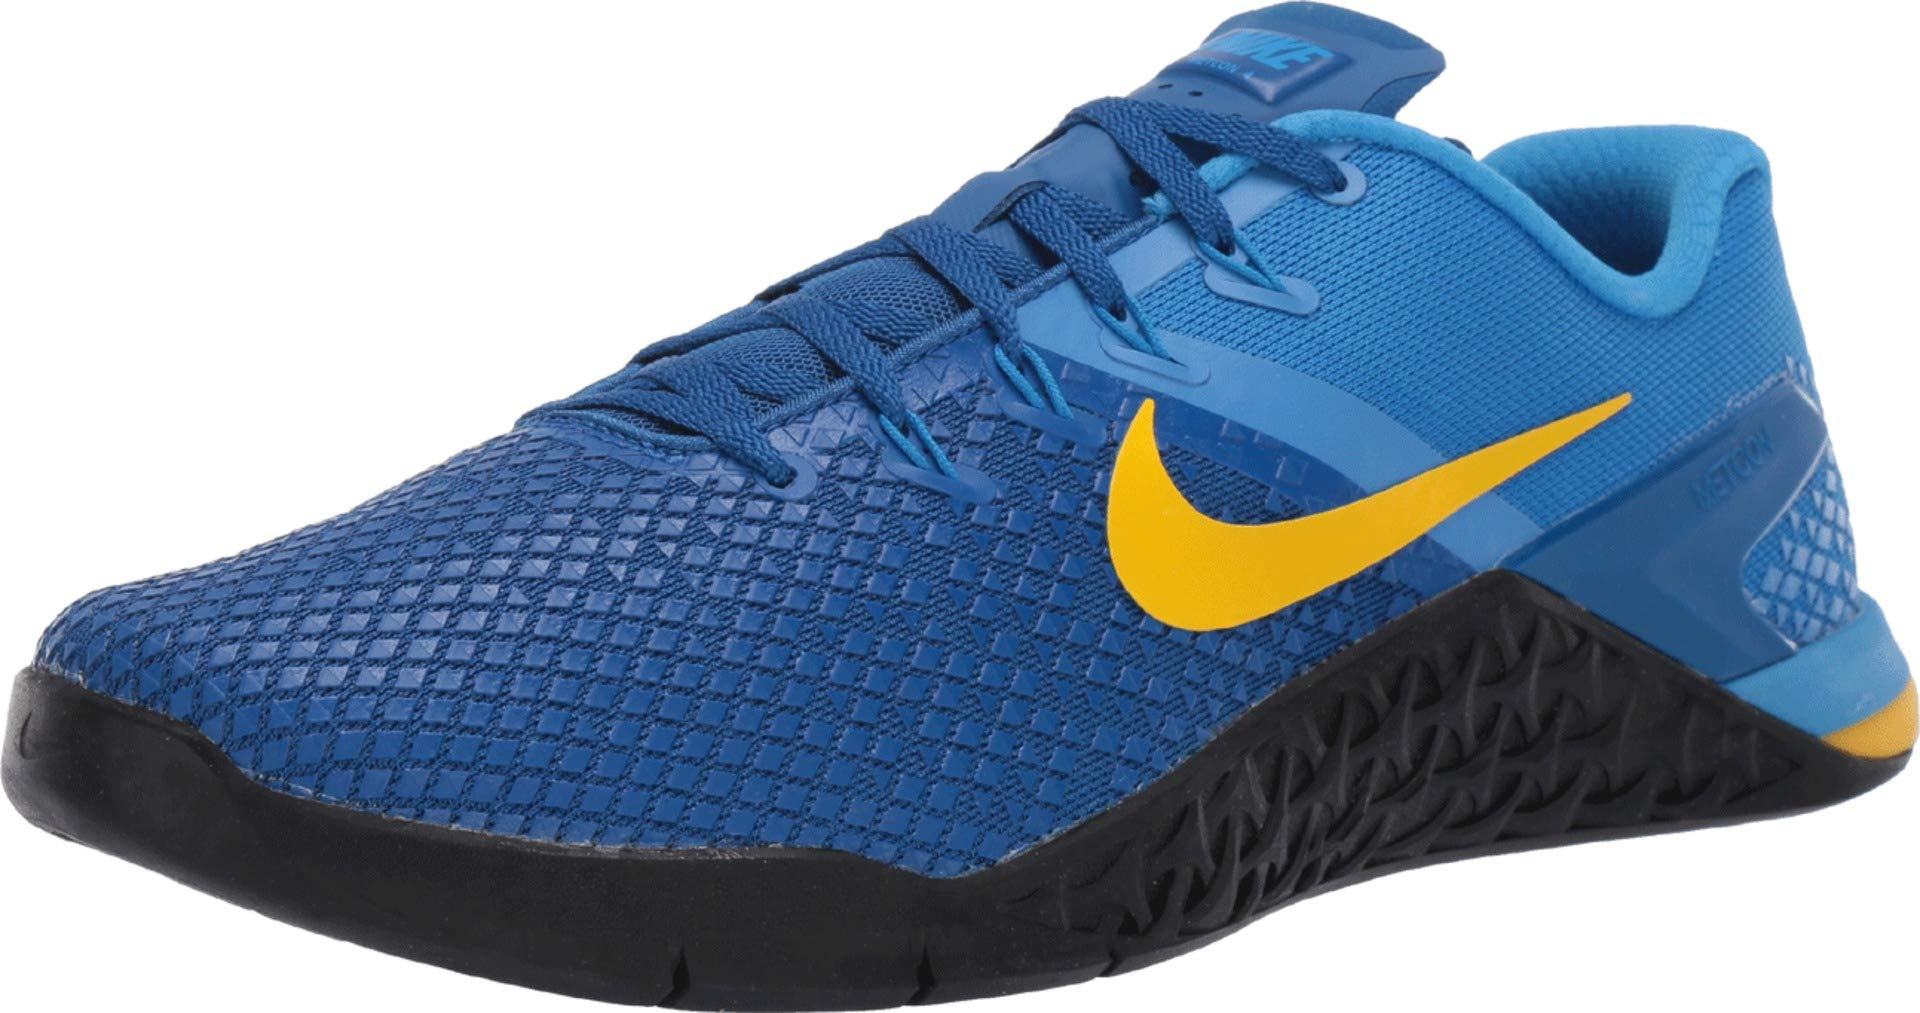 Nike Metcon 4 XD Men's Training Shoe Team Royal/Amarillo-LT Photo Blue-Black 7.5